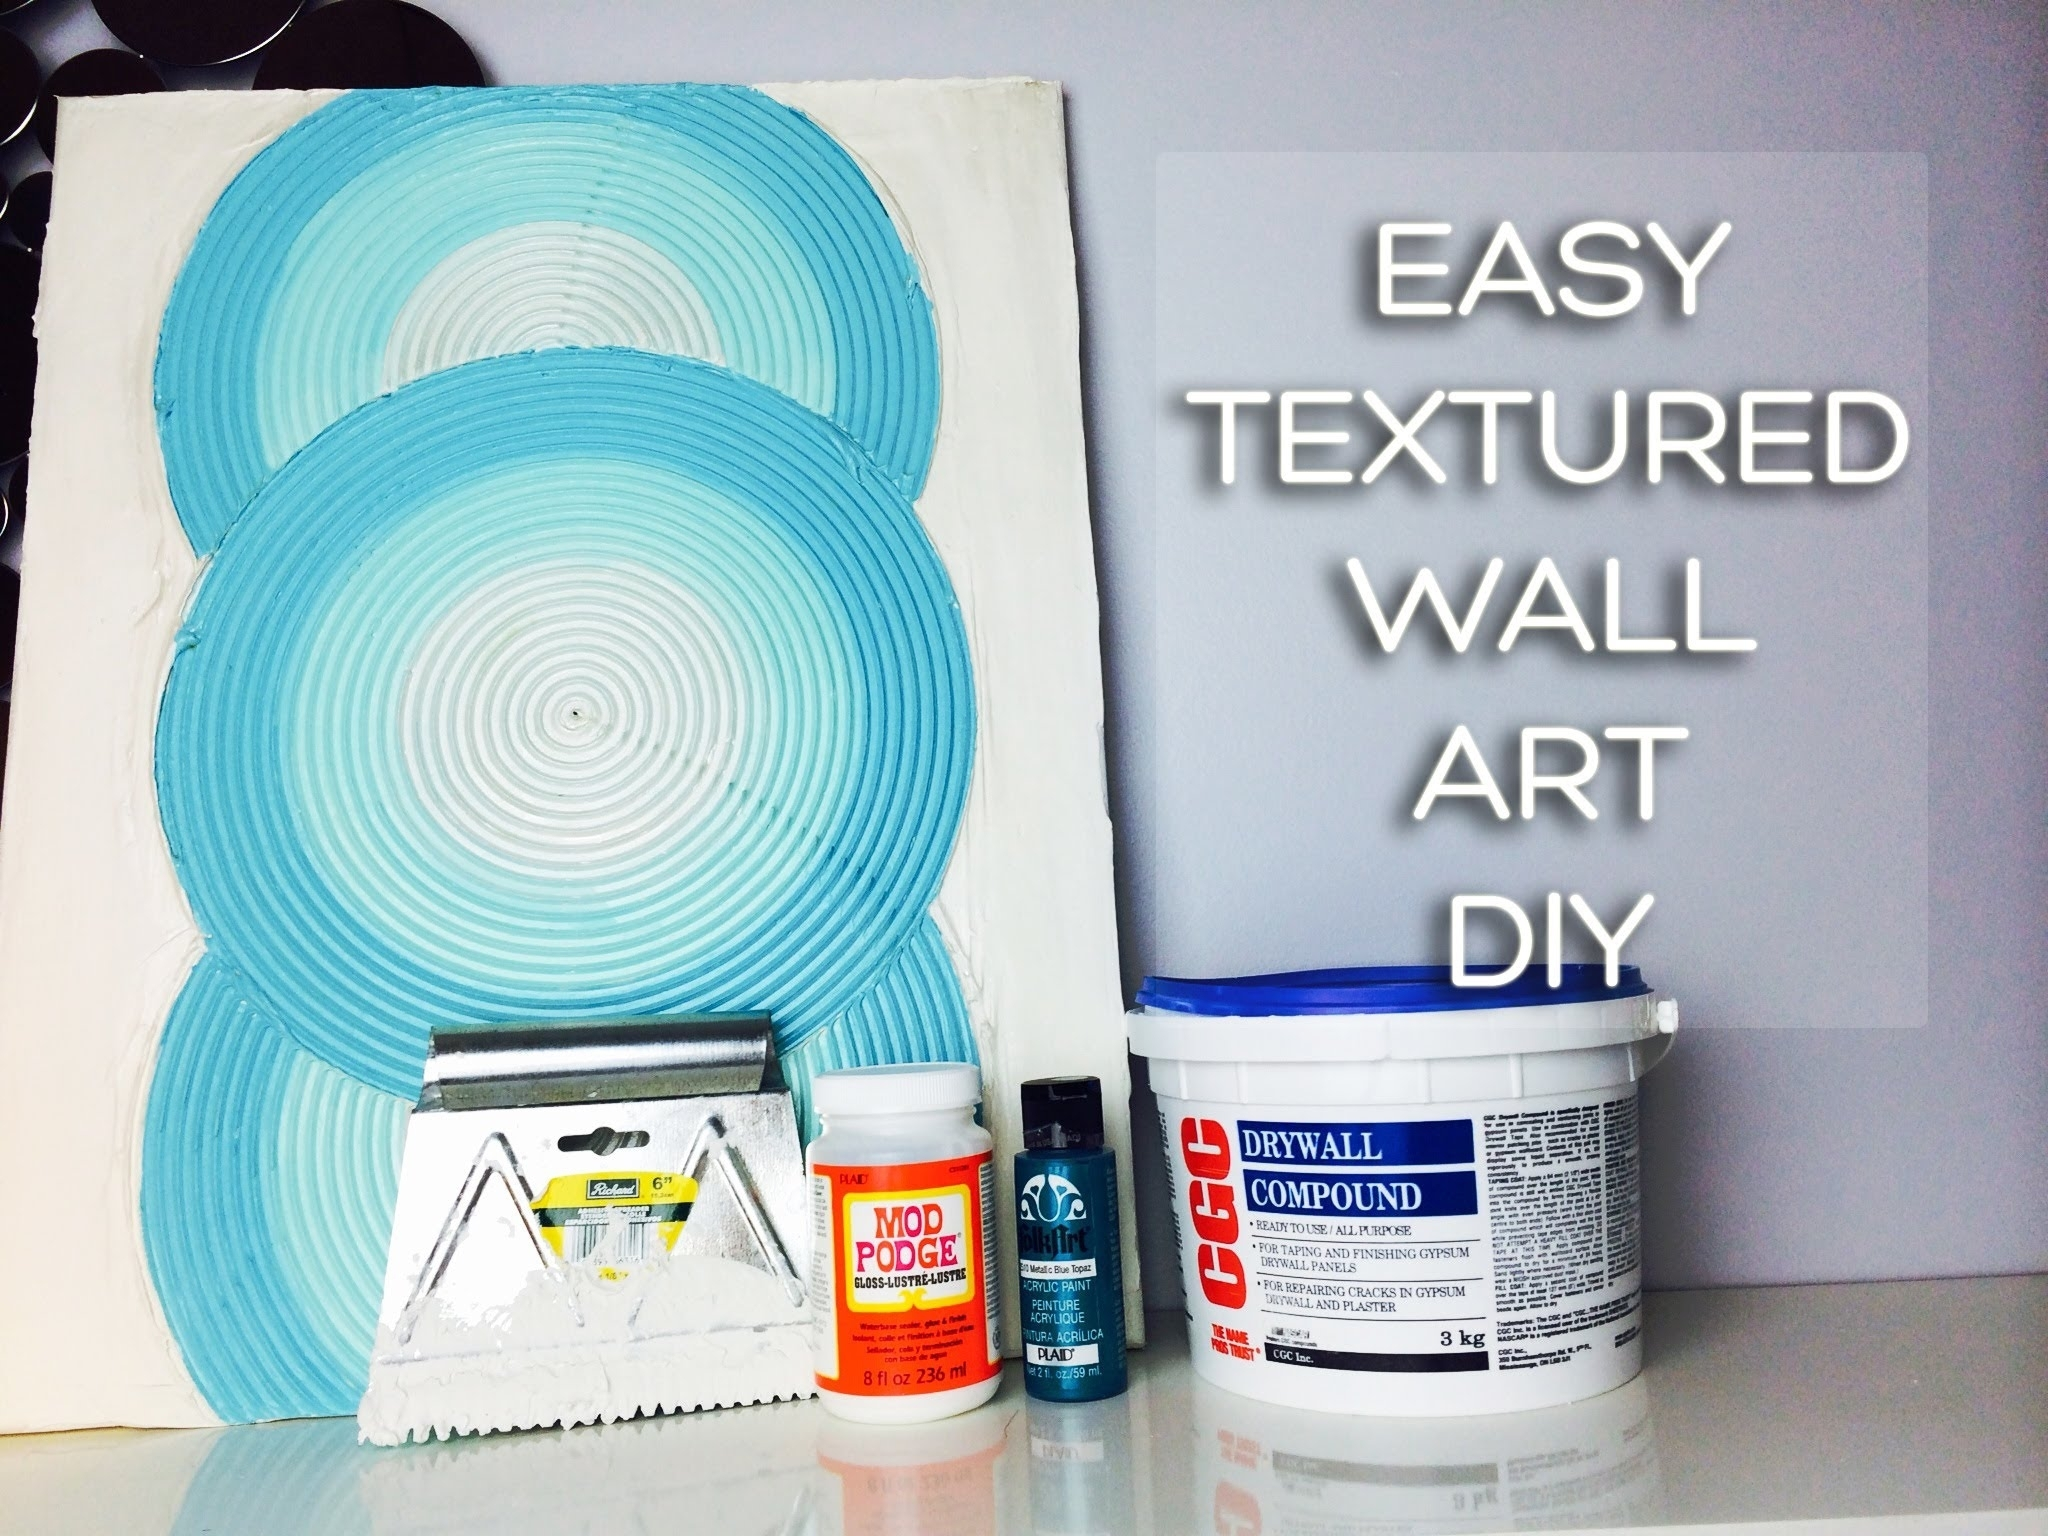 Try A New Medium  Drywall Mud Can Be Used On Canvas Or Walls For Latest Textured Fabric Wall Art (View 14 of 15)